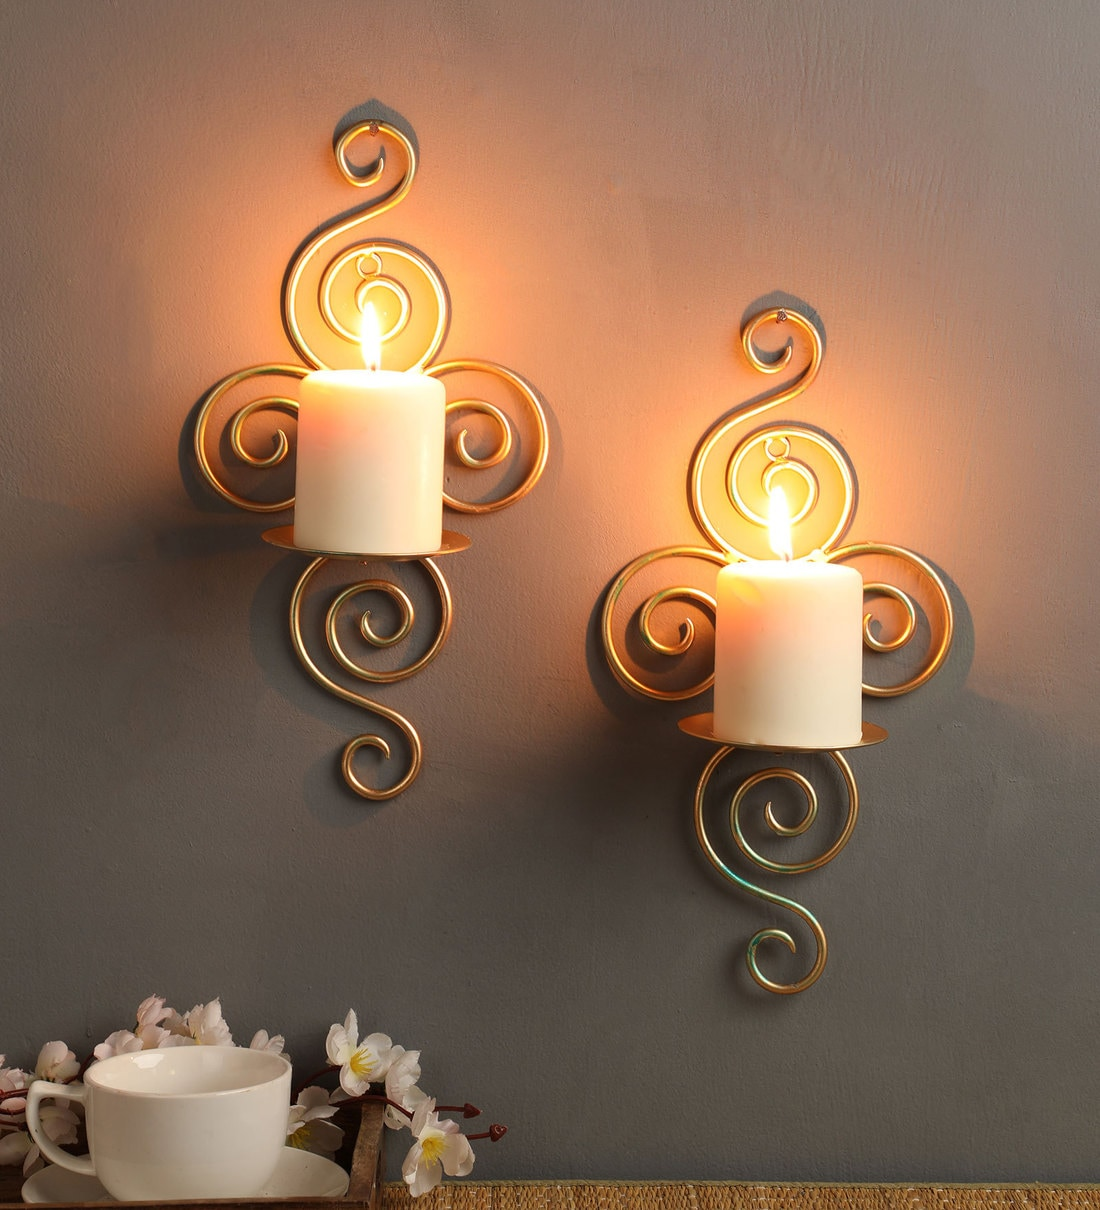 Buy Gold Metal Wall Candle Holder Set Of 2 By Hosley Online Wall Candle Holder Lamps Lighting Lamps Lighting Pepperfry Product